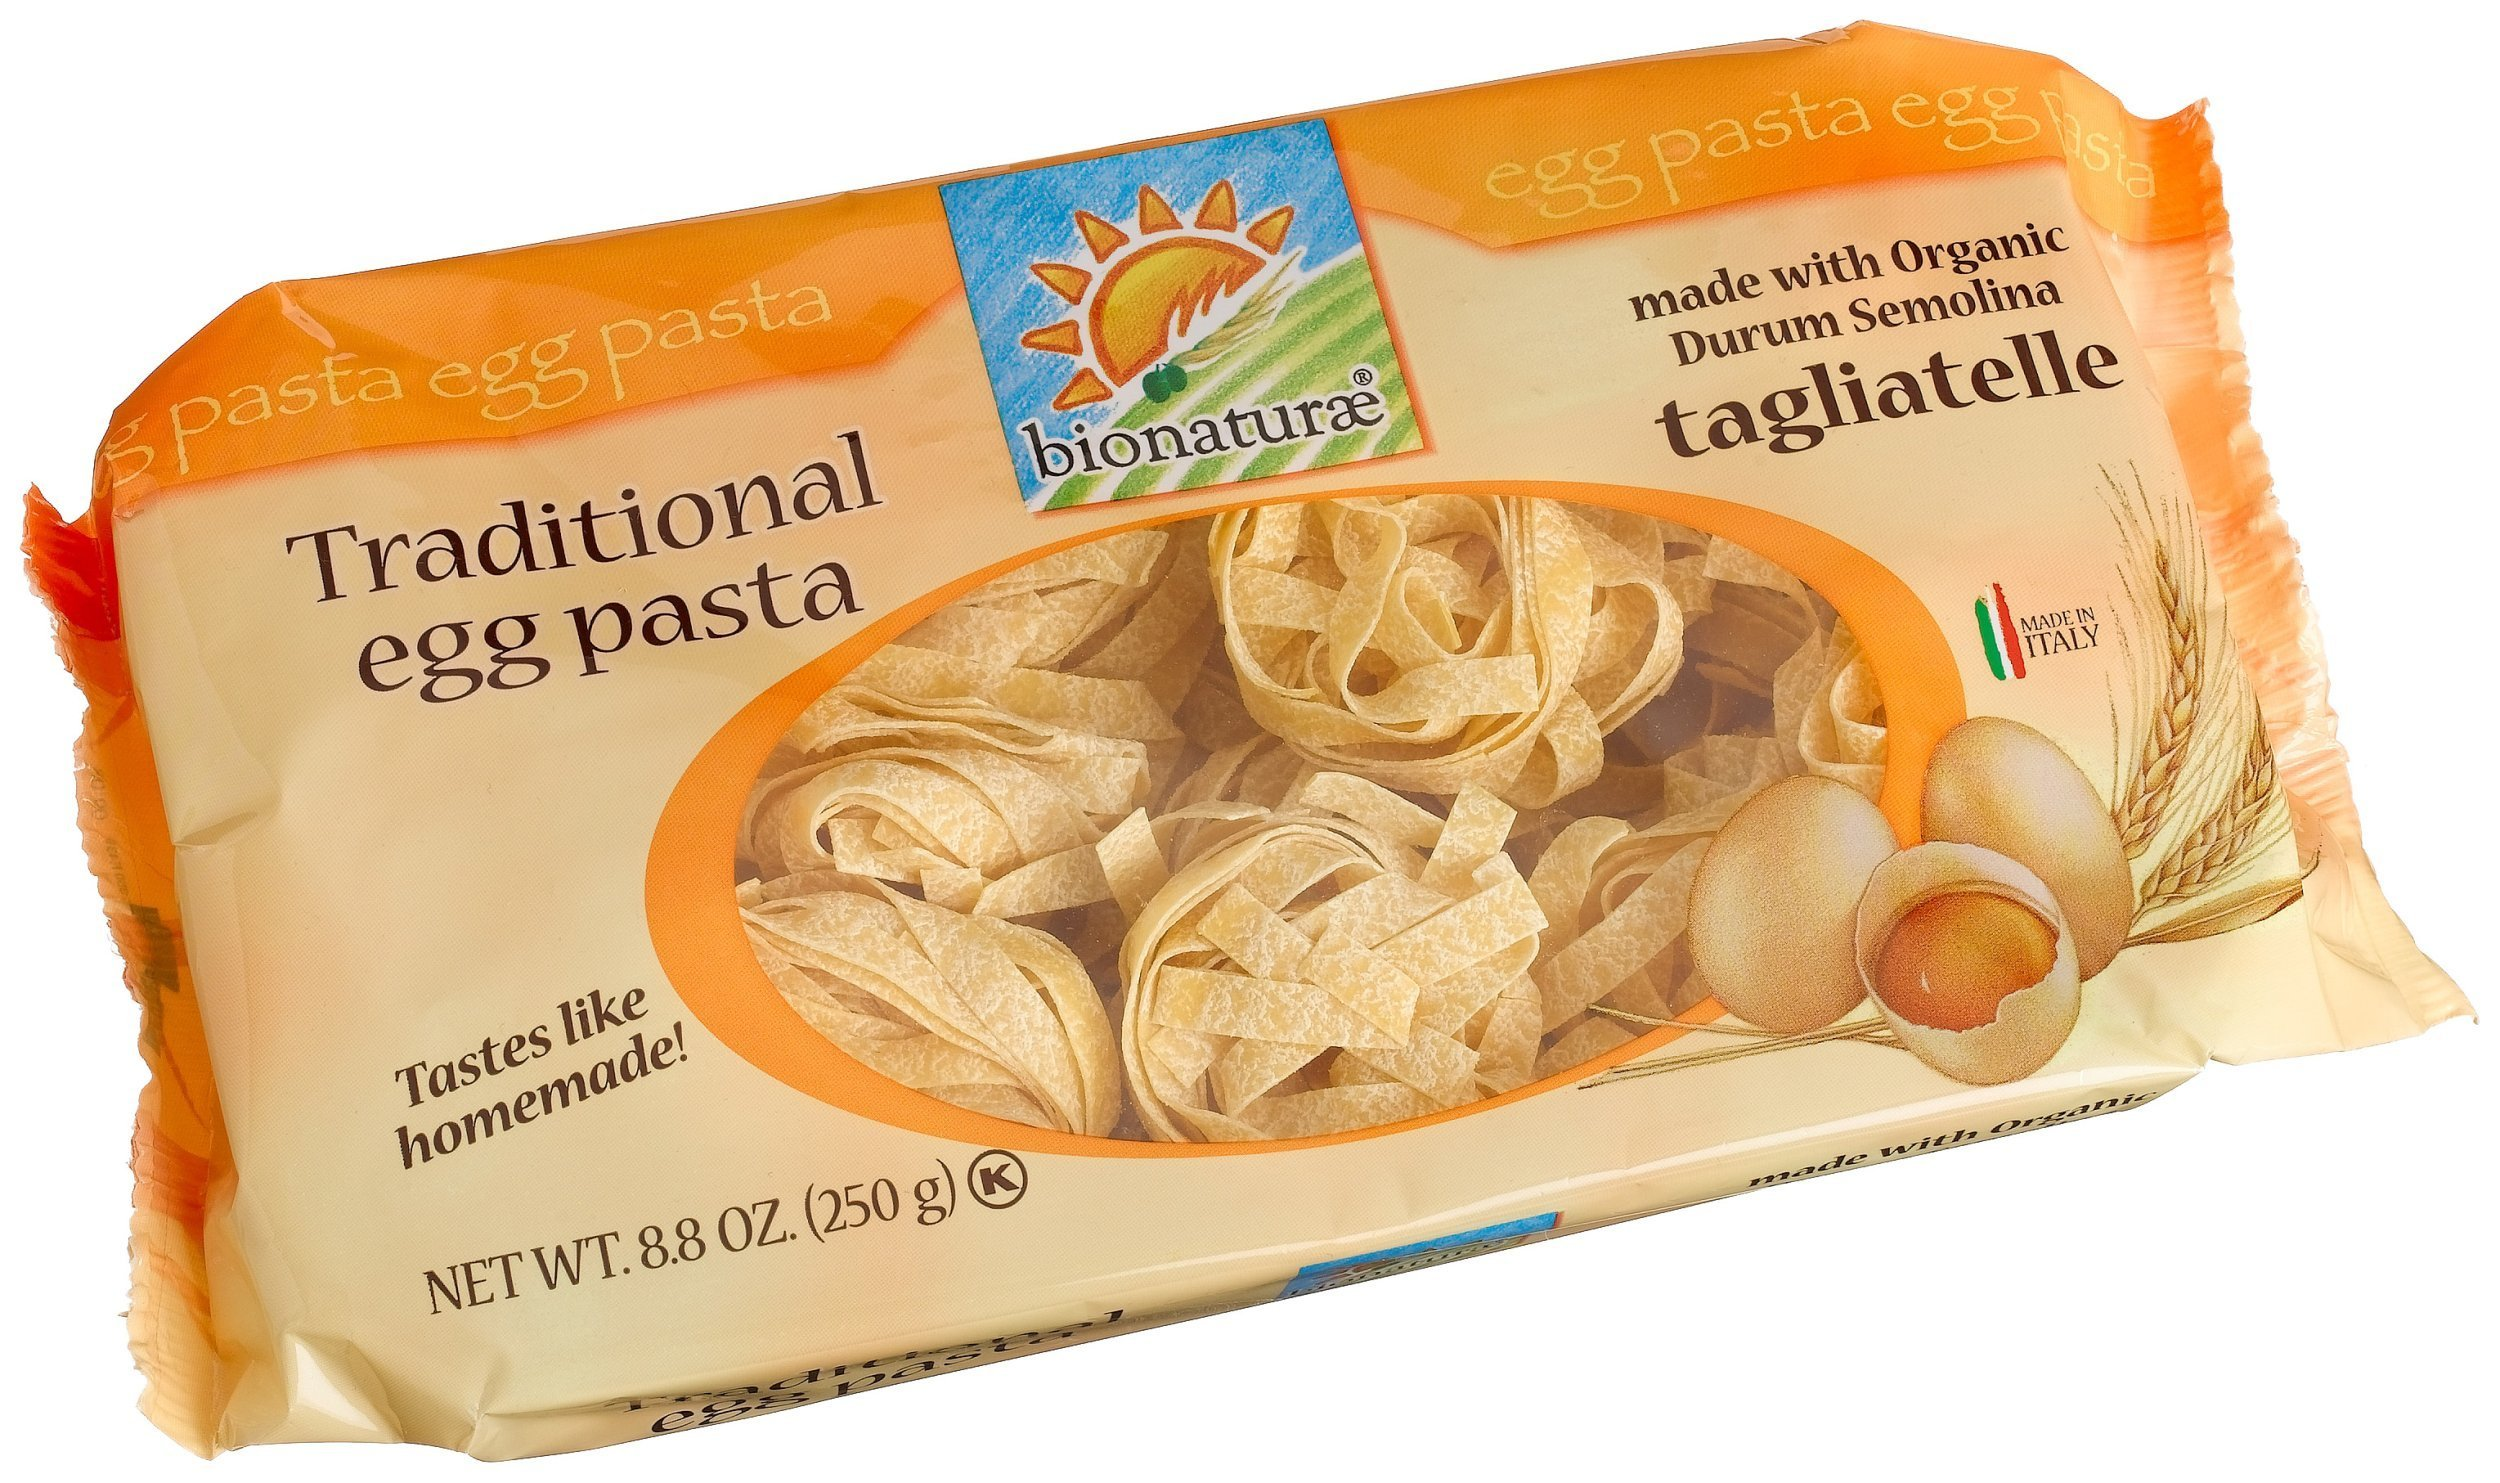 bionaturae Tagliatelle Egg Pasta, 8.8 Ounce Bags (Pack of 6) by bionaturae